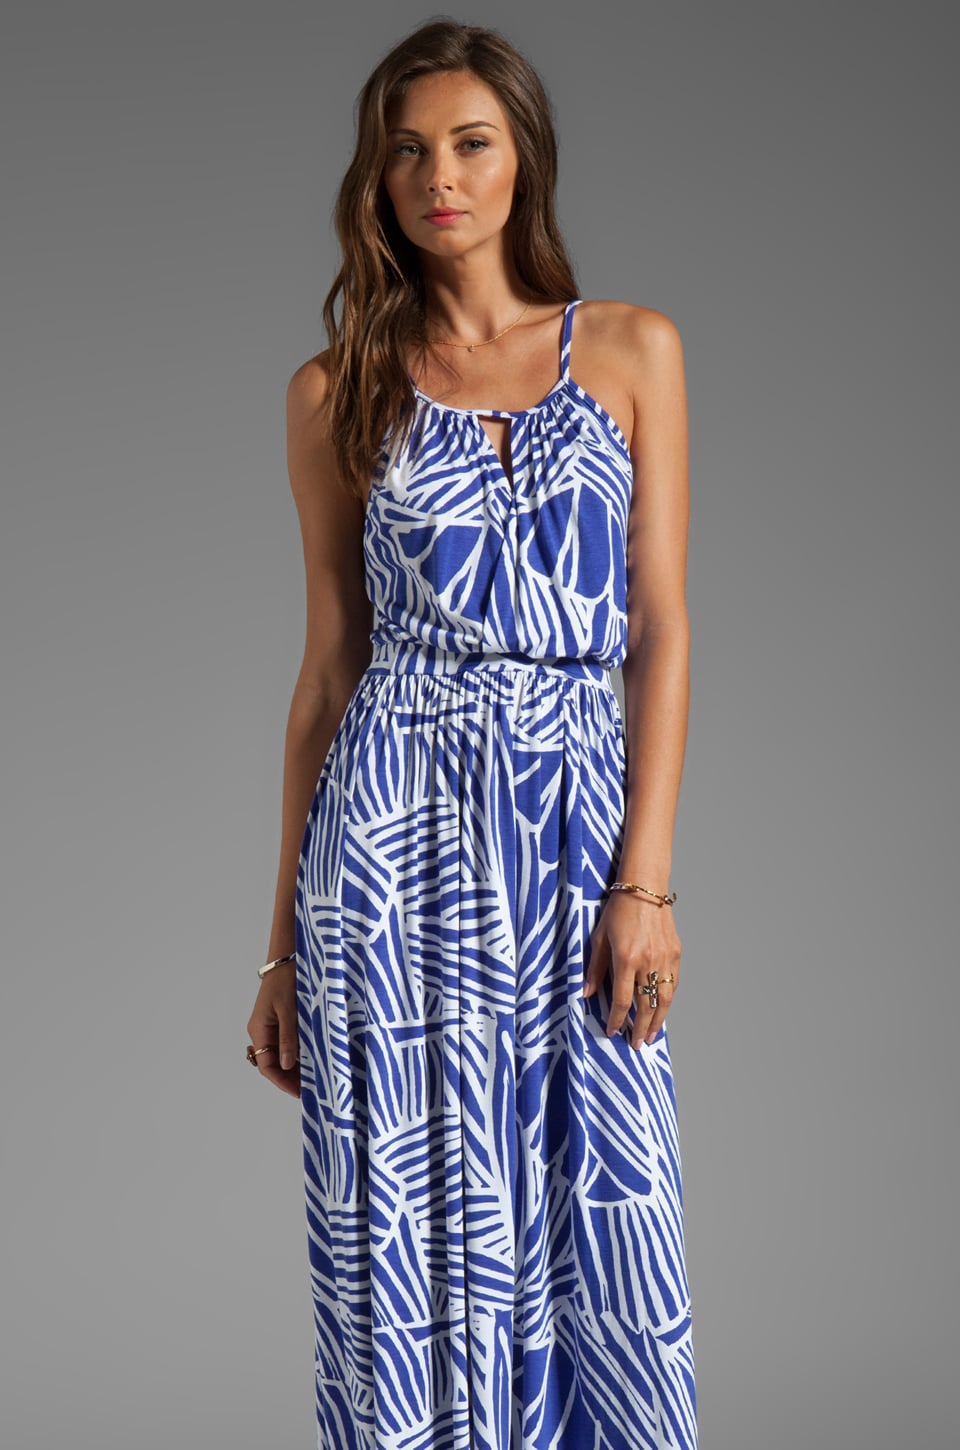 Rachel Pally Rhiannon Maxi Dress in River Ray